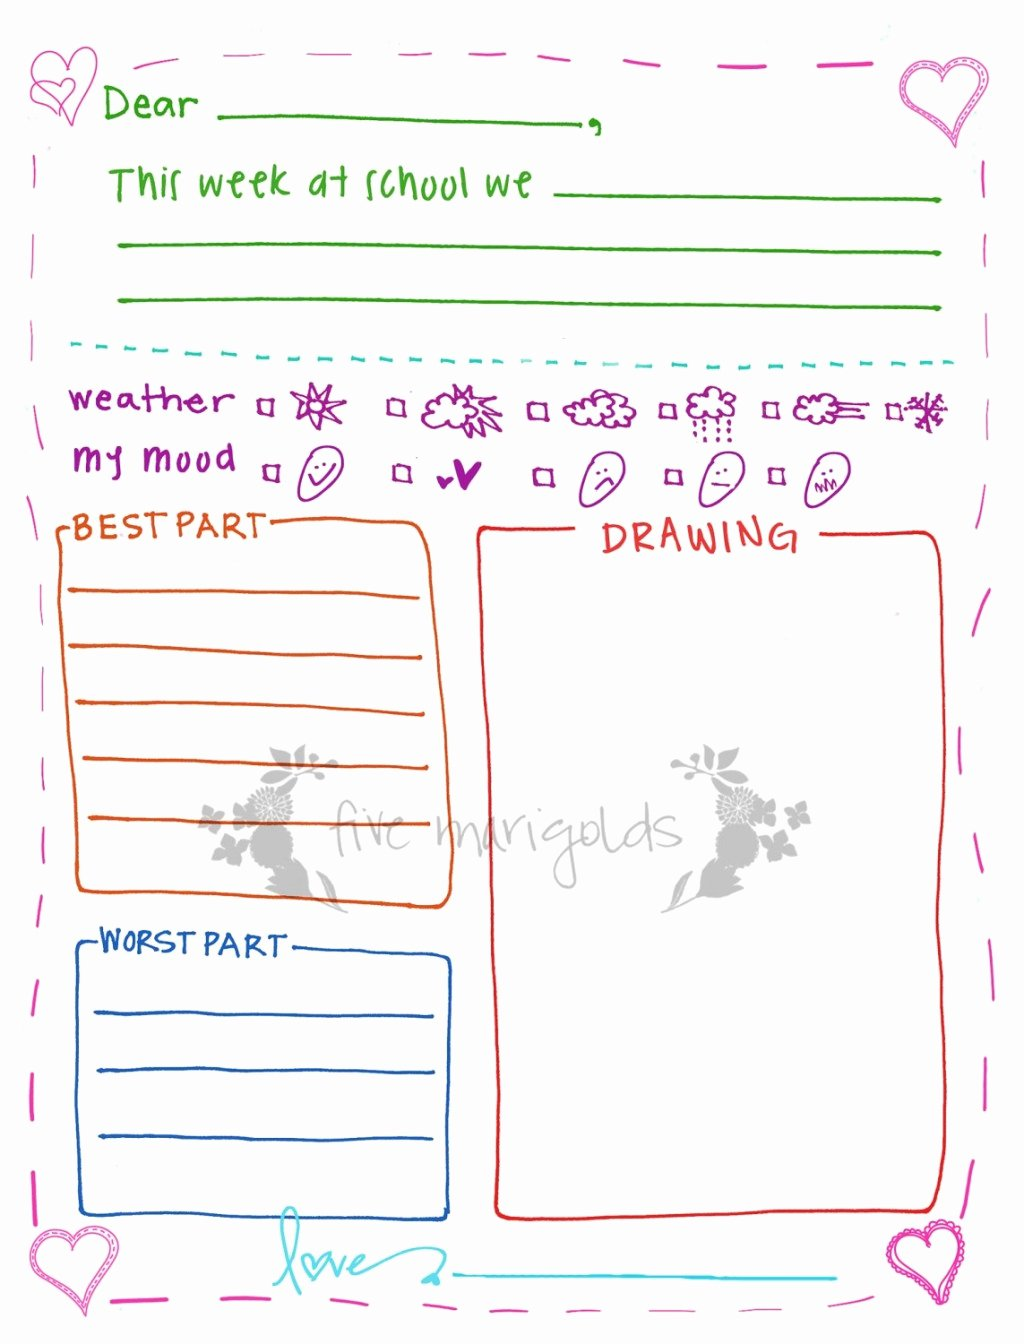 Letter Writing format for Students Beautiful Free Printable Letter Writing Templates for Grandma Pen